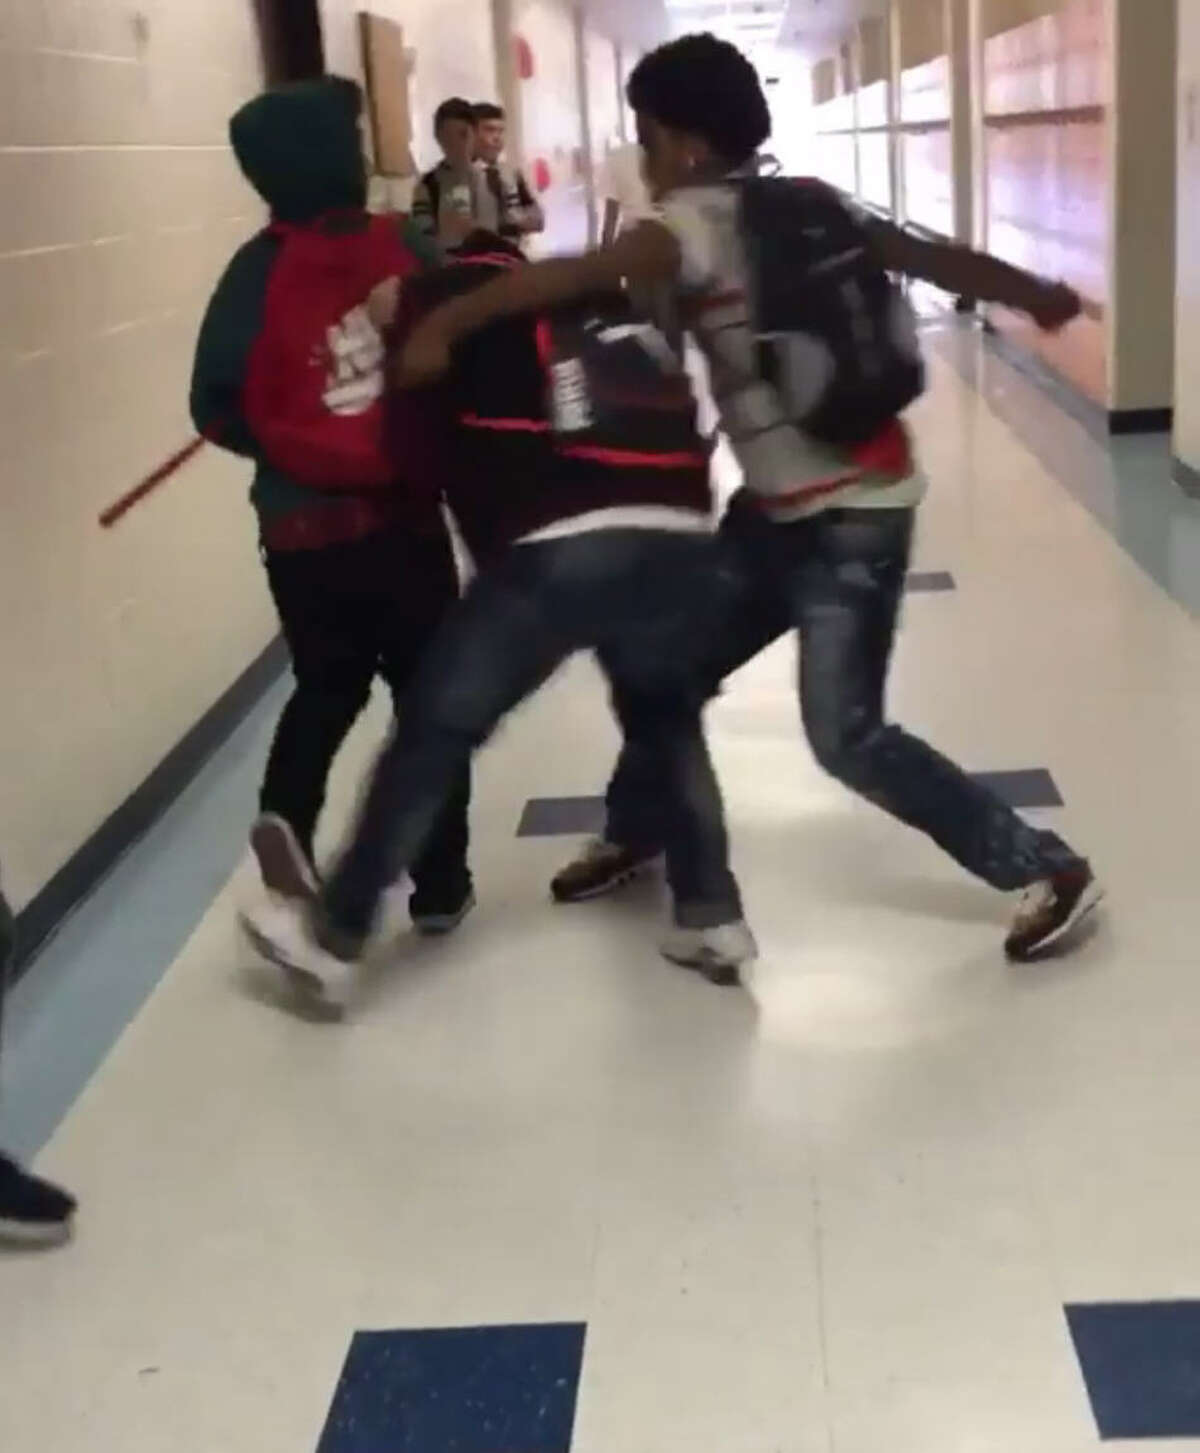 A La Porte school fight has gone viral due to social media and the school is increasing security to ensure incidences like this don't happen again.